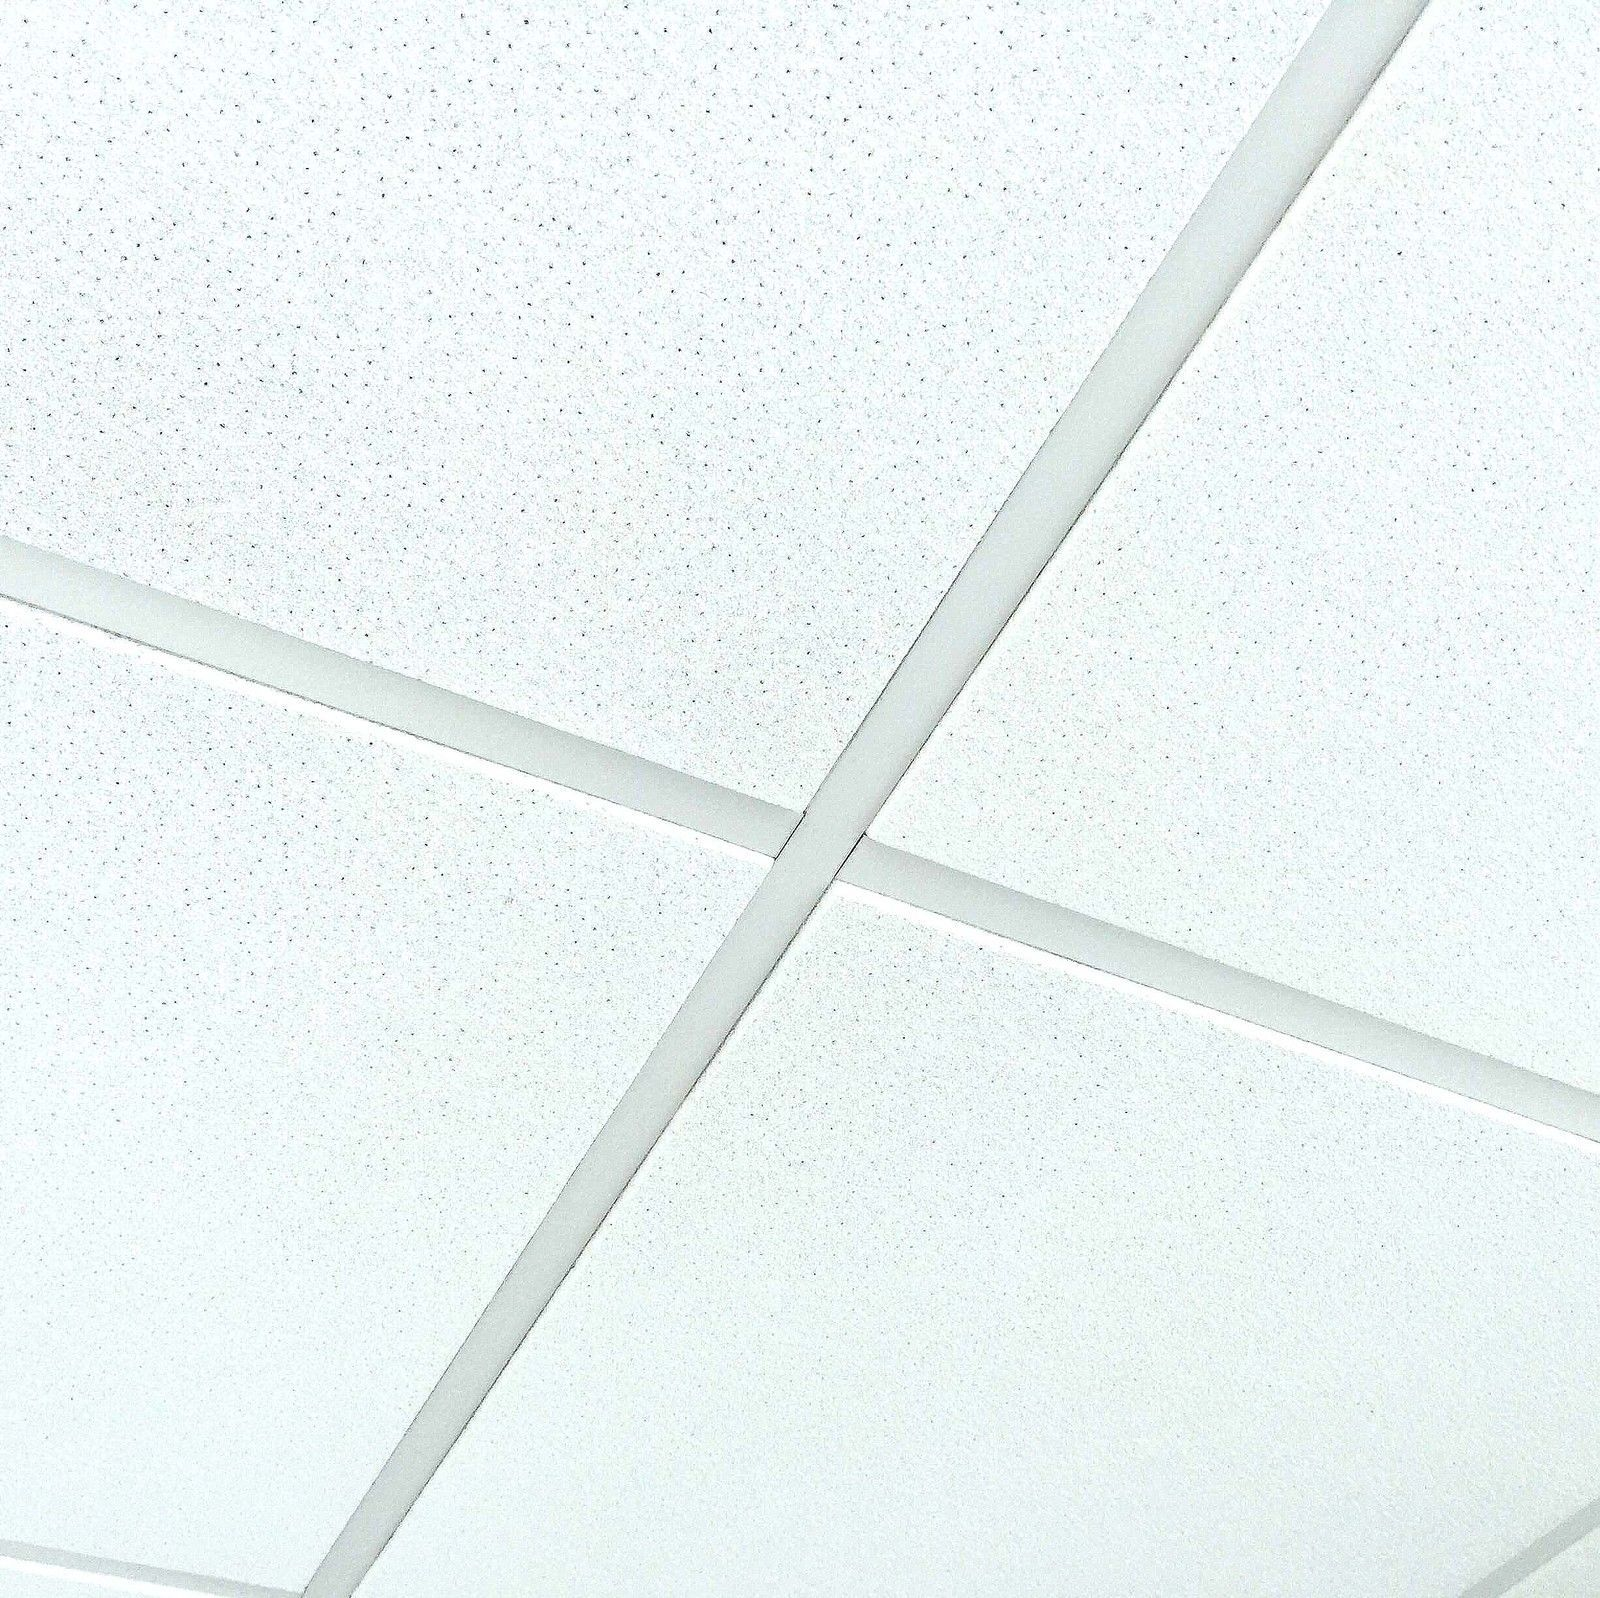 Dune supreme tegular ceiling tiles board 600 x 600mm edge 24mm grid armstrong dune supreme tegular ceiling tiles board 600 x 600mm edge 24mm grid dailygadgetfo Gallery